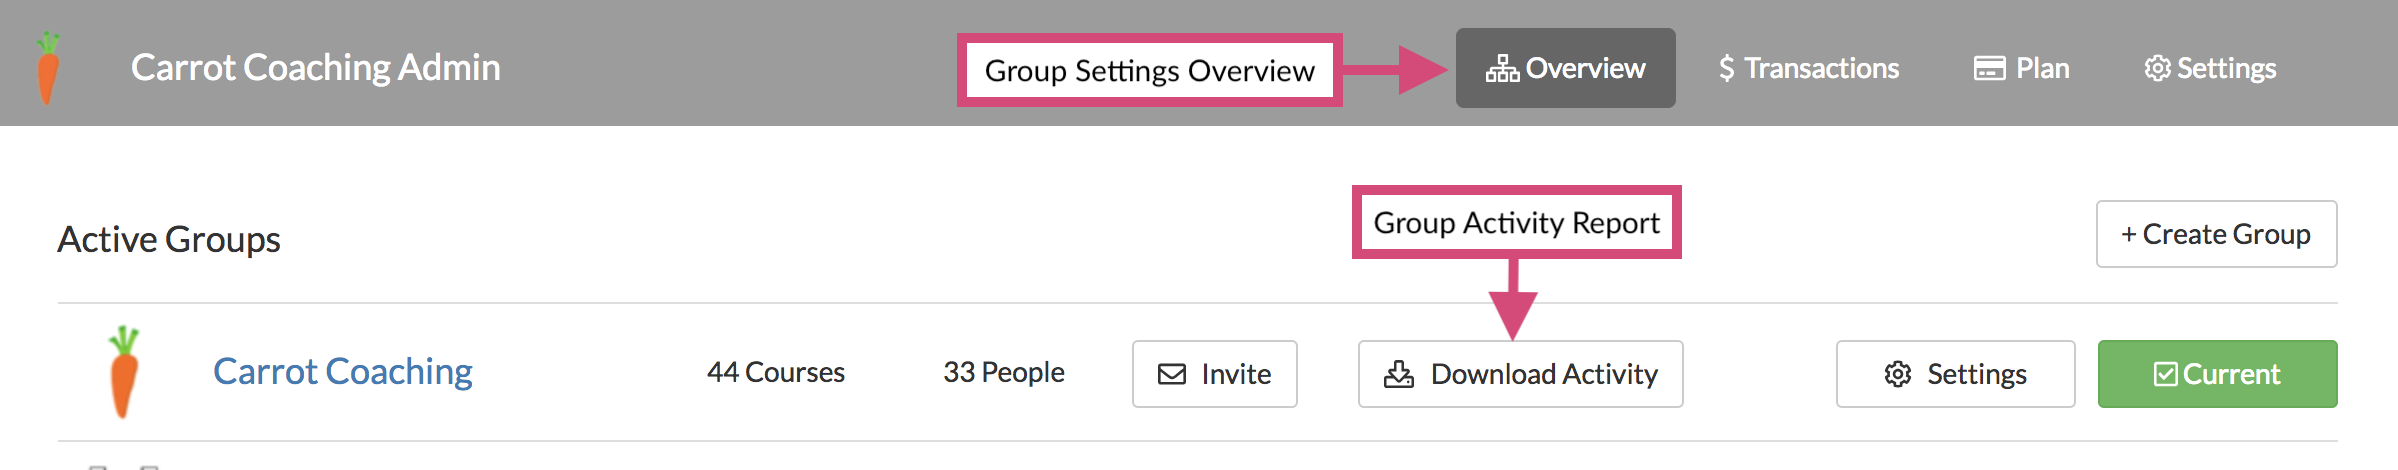 Report_GroupSettings.png